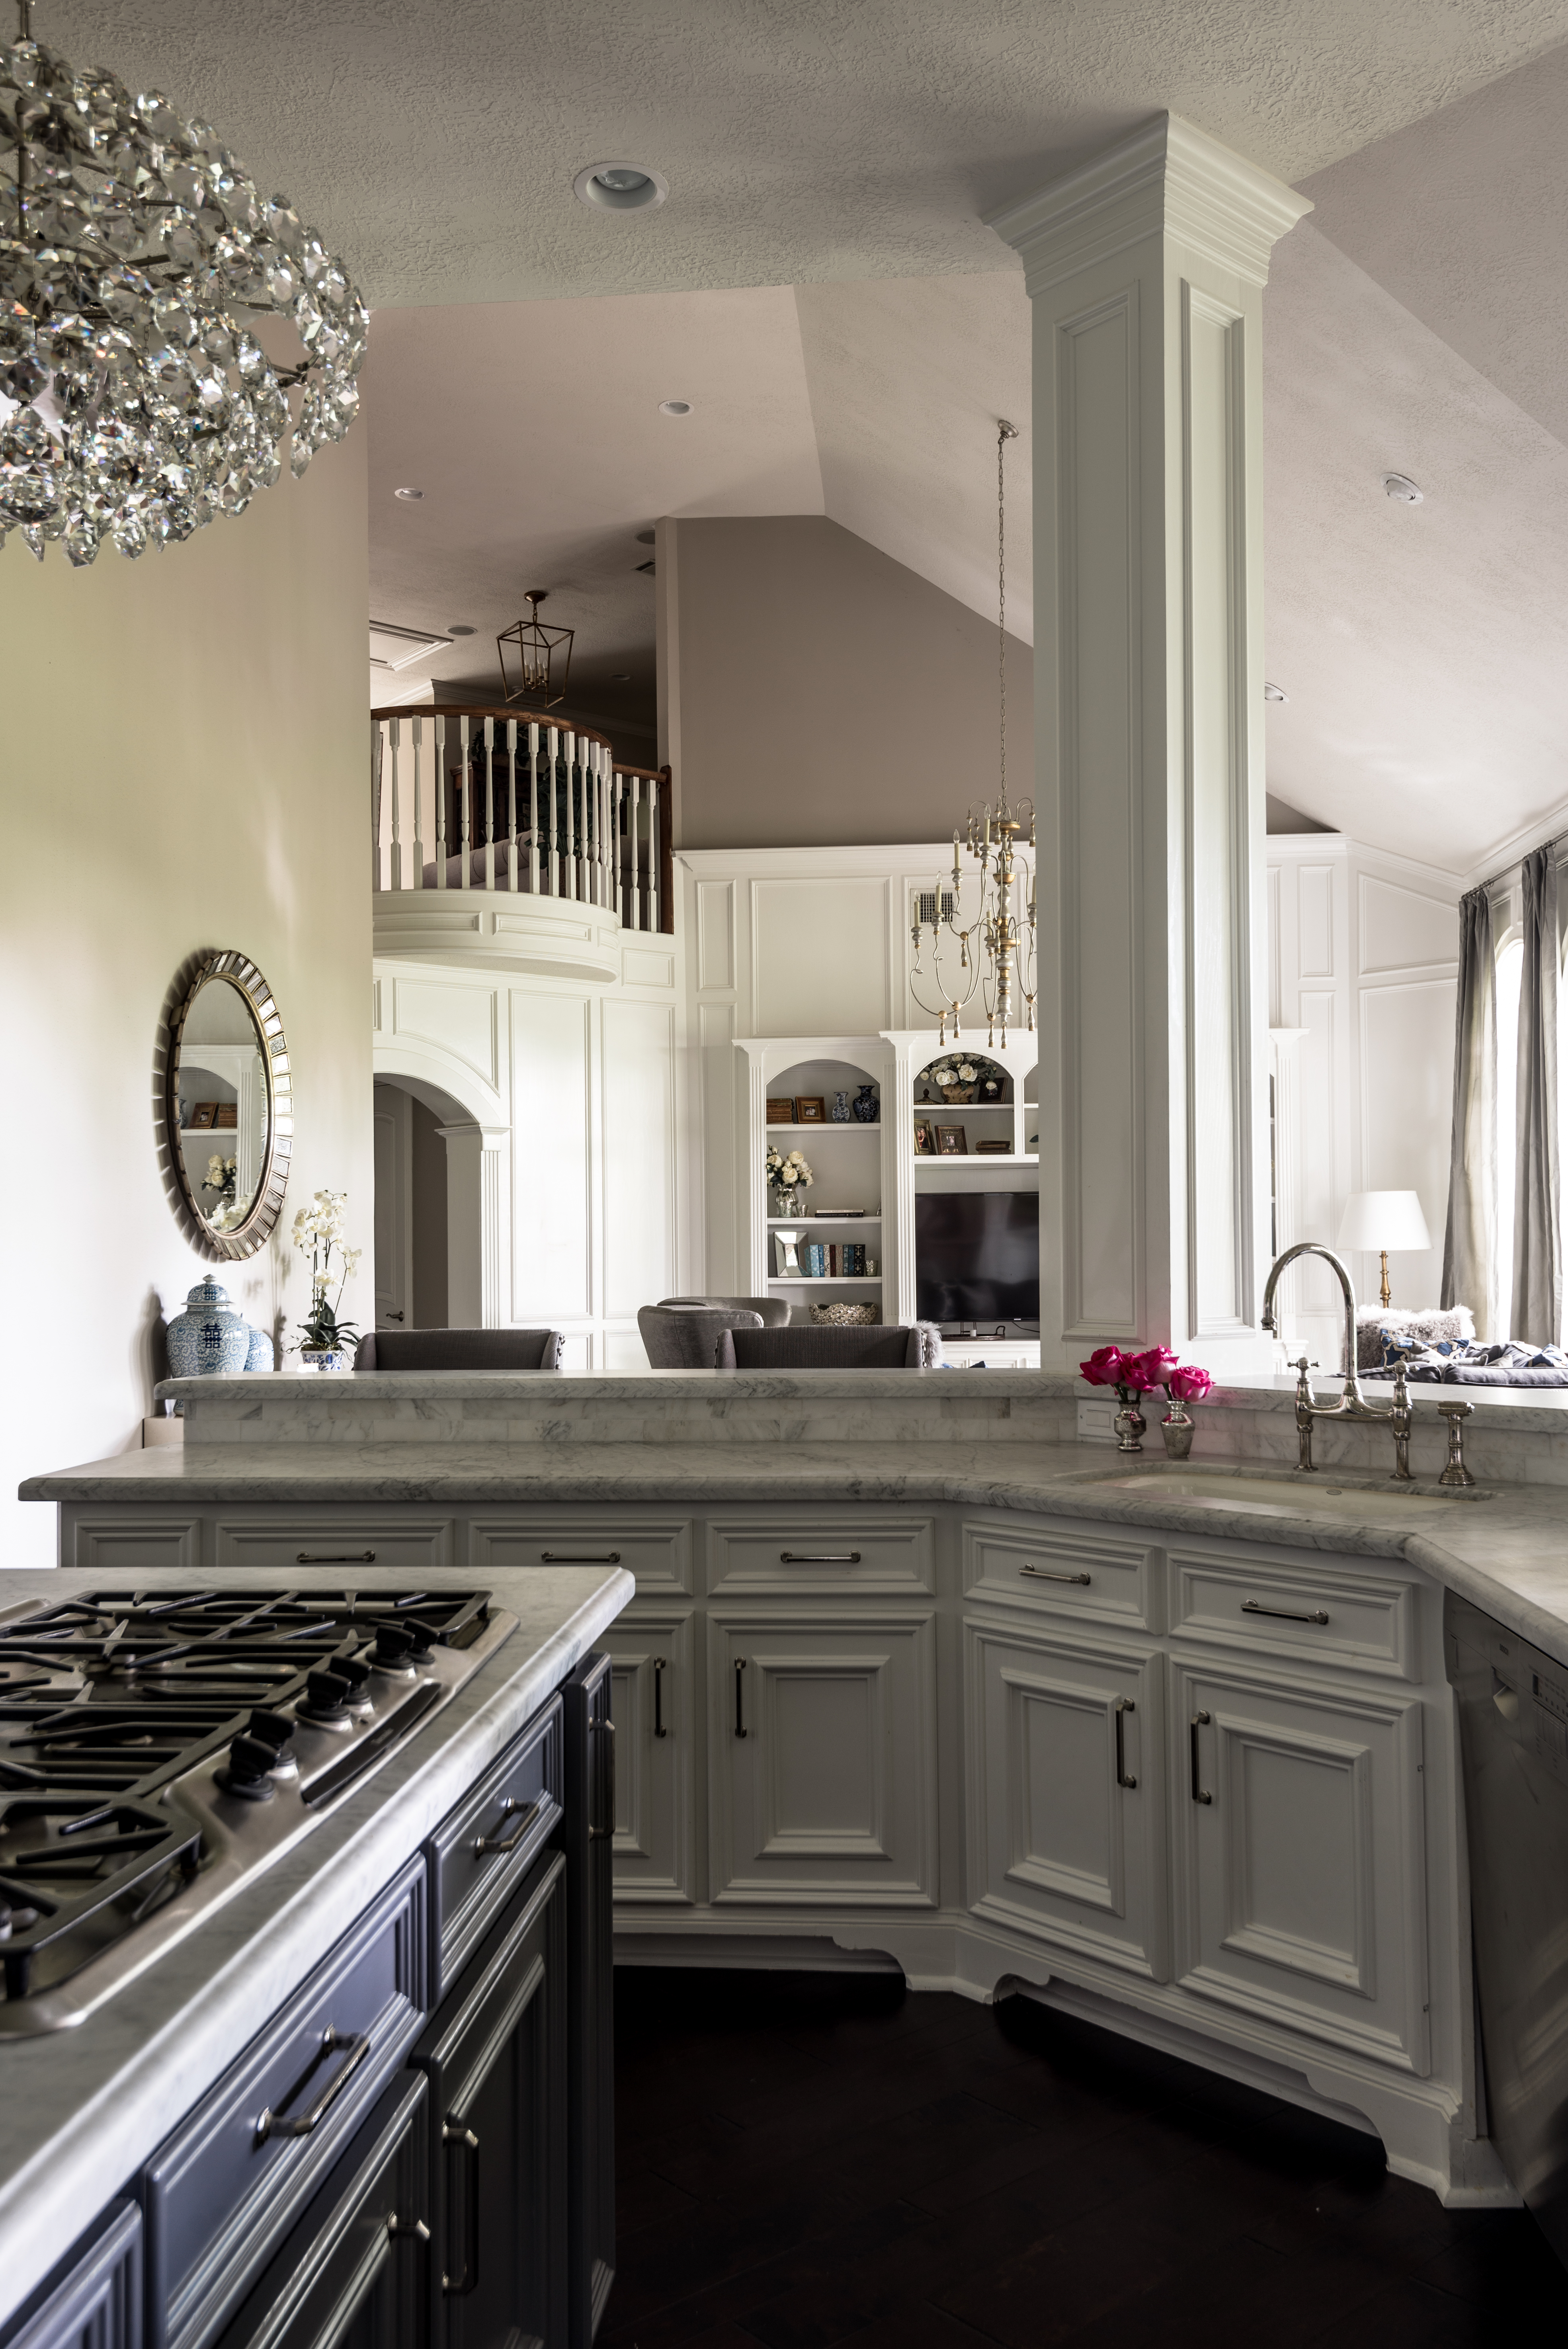 6 Tips For Redesigning Your Kitchen Countertops | HuffPost on Kitchen Counter Top Decor  id=36776